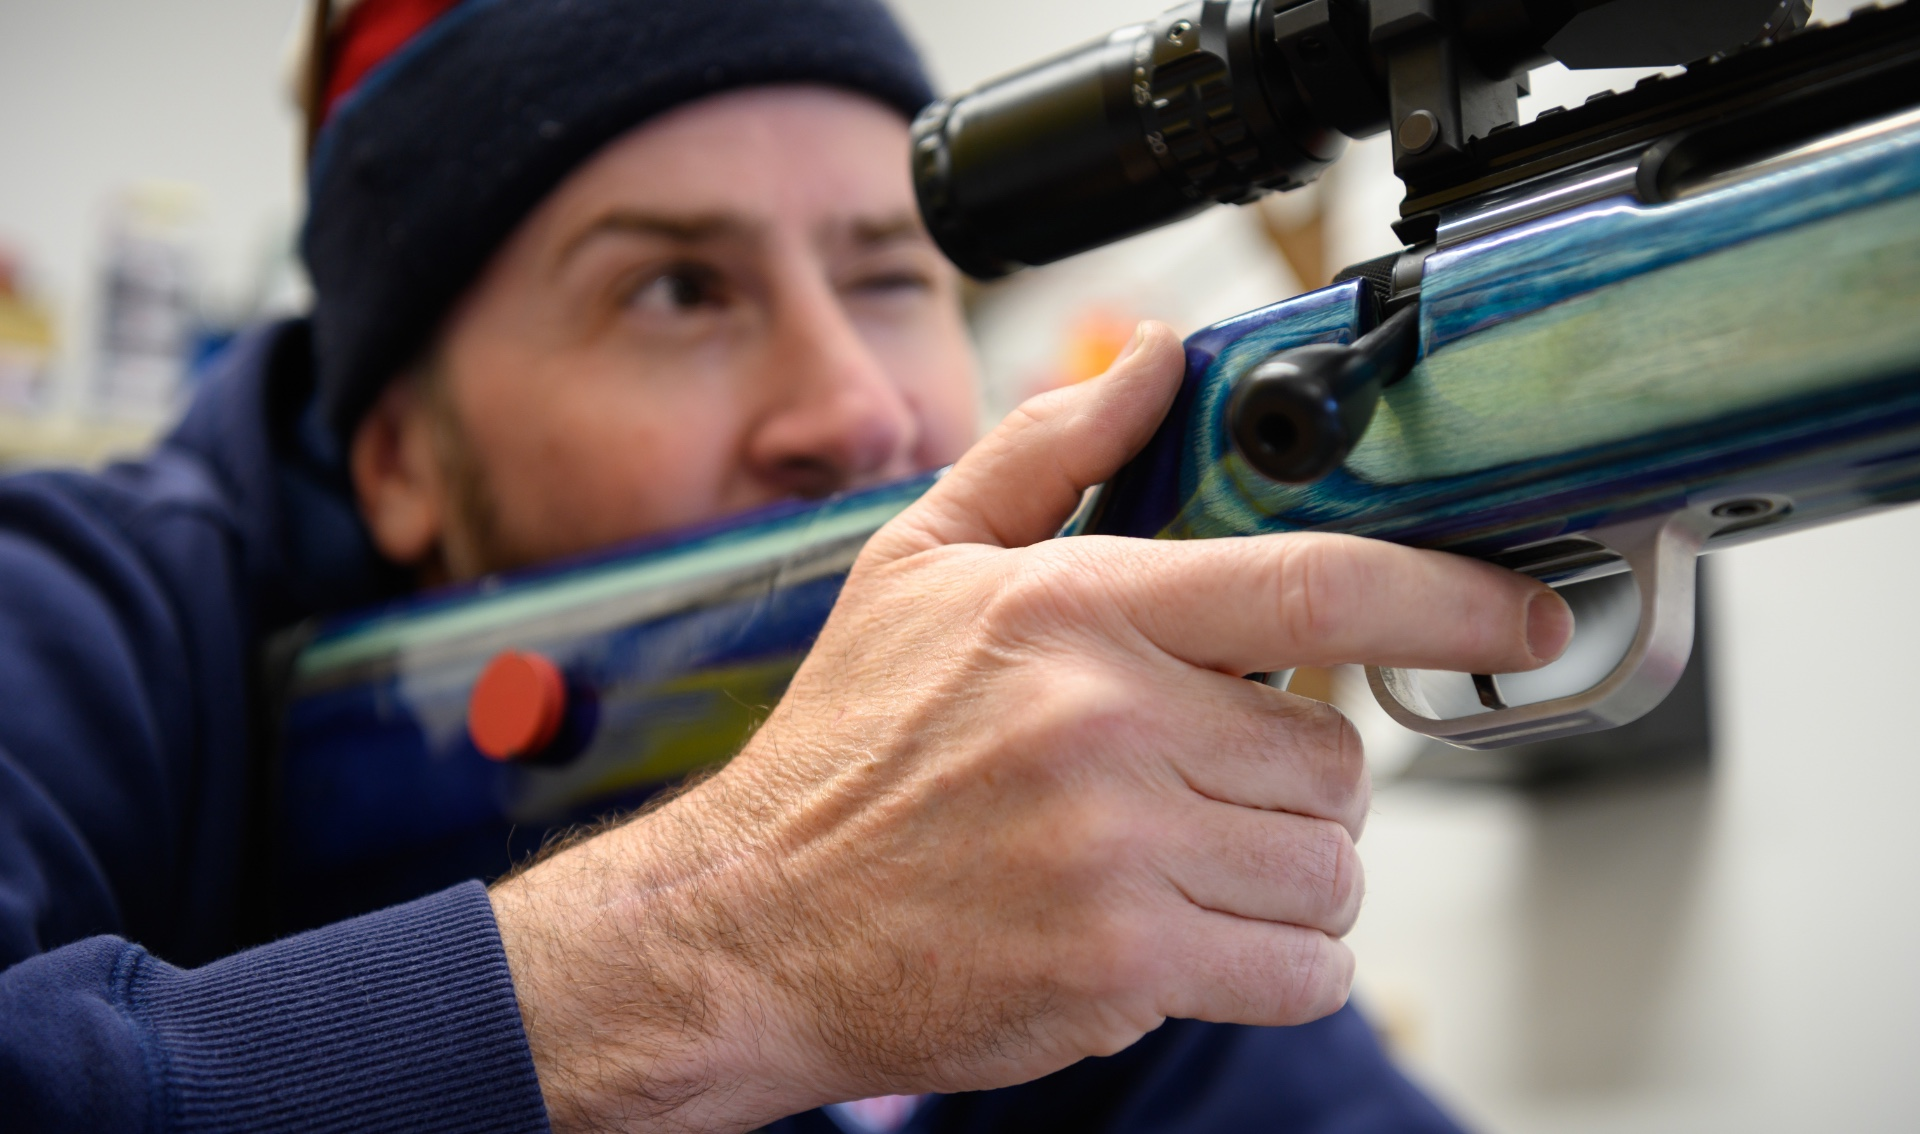 With his finger on the trigger, Addison looks through the rifle's scope